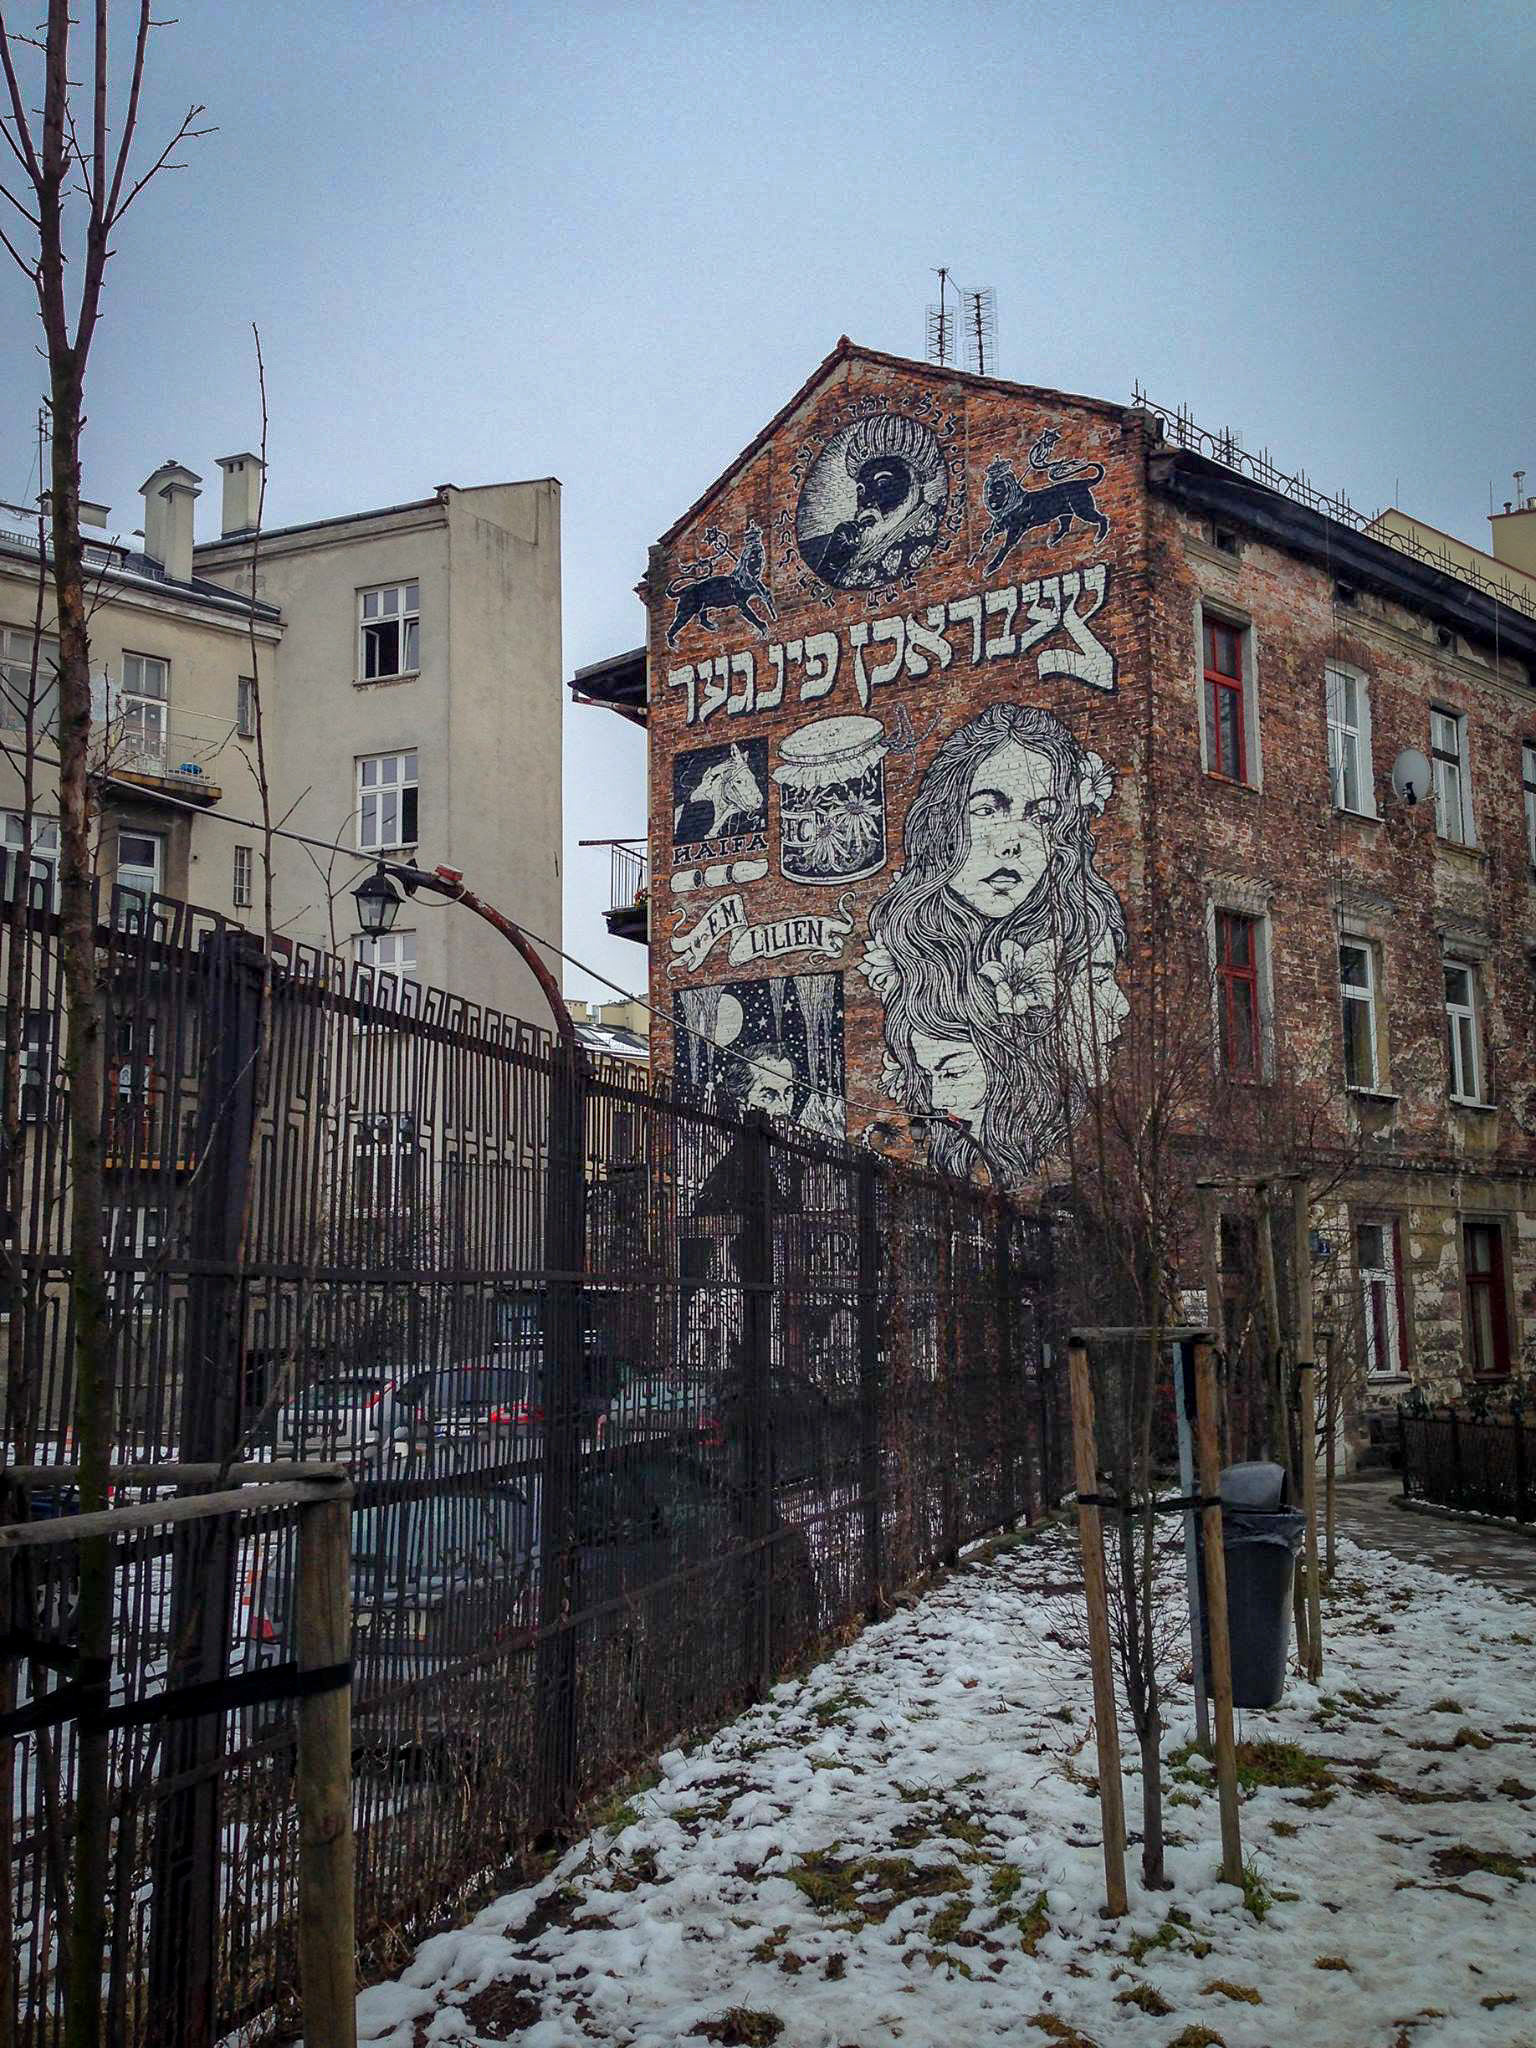 Beautiful street art in Krakow's Jewish Quarter.